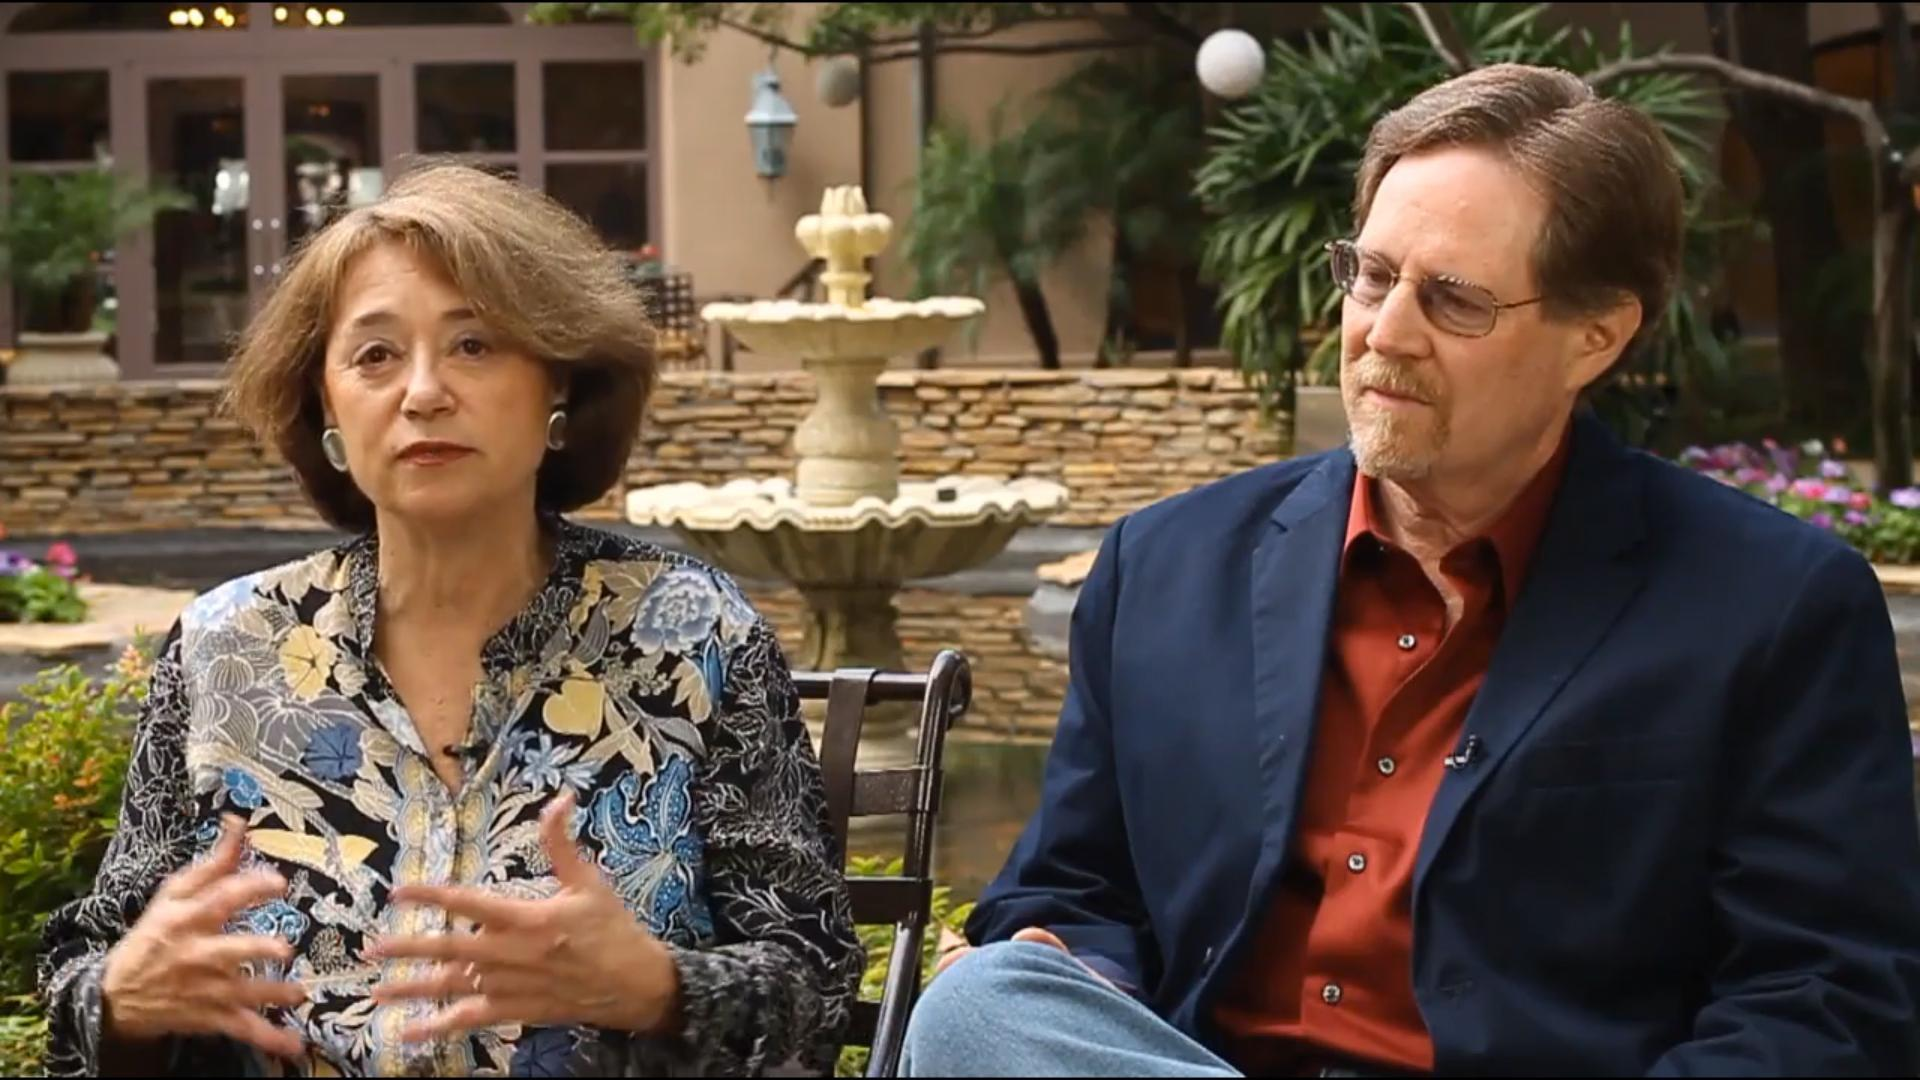 Interview with Judith Ehrlich and Rick Goldsmith